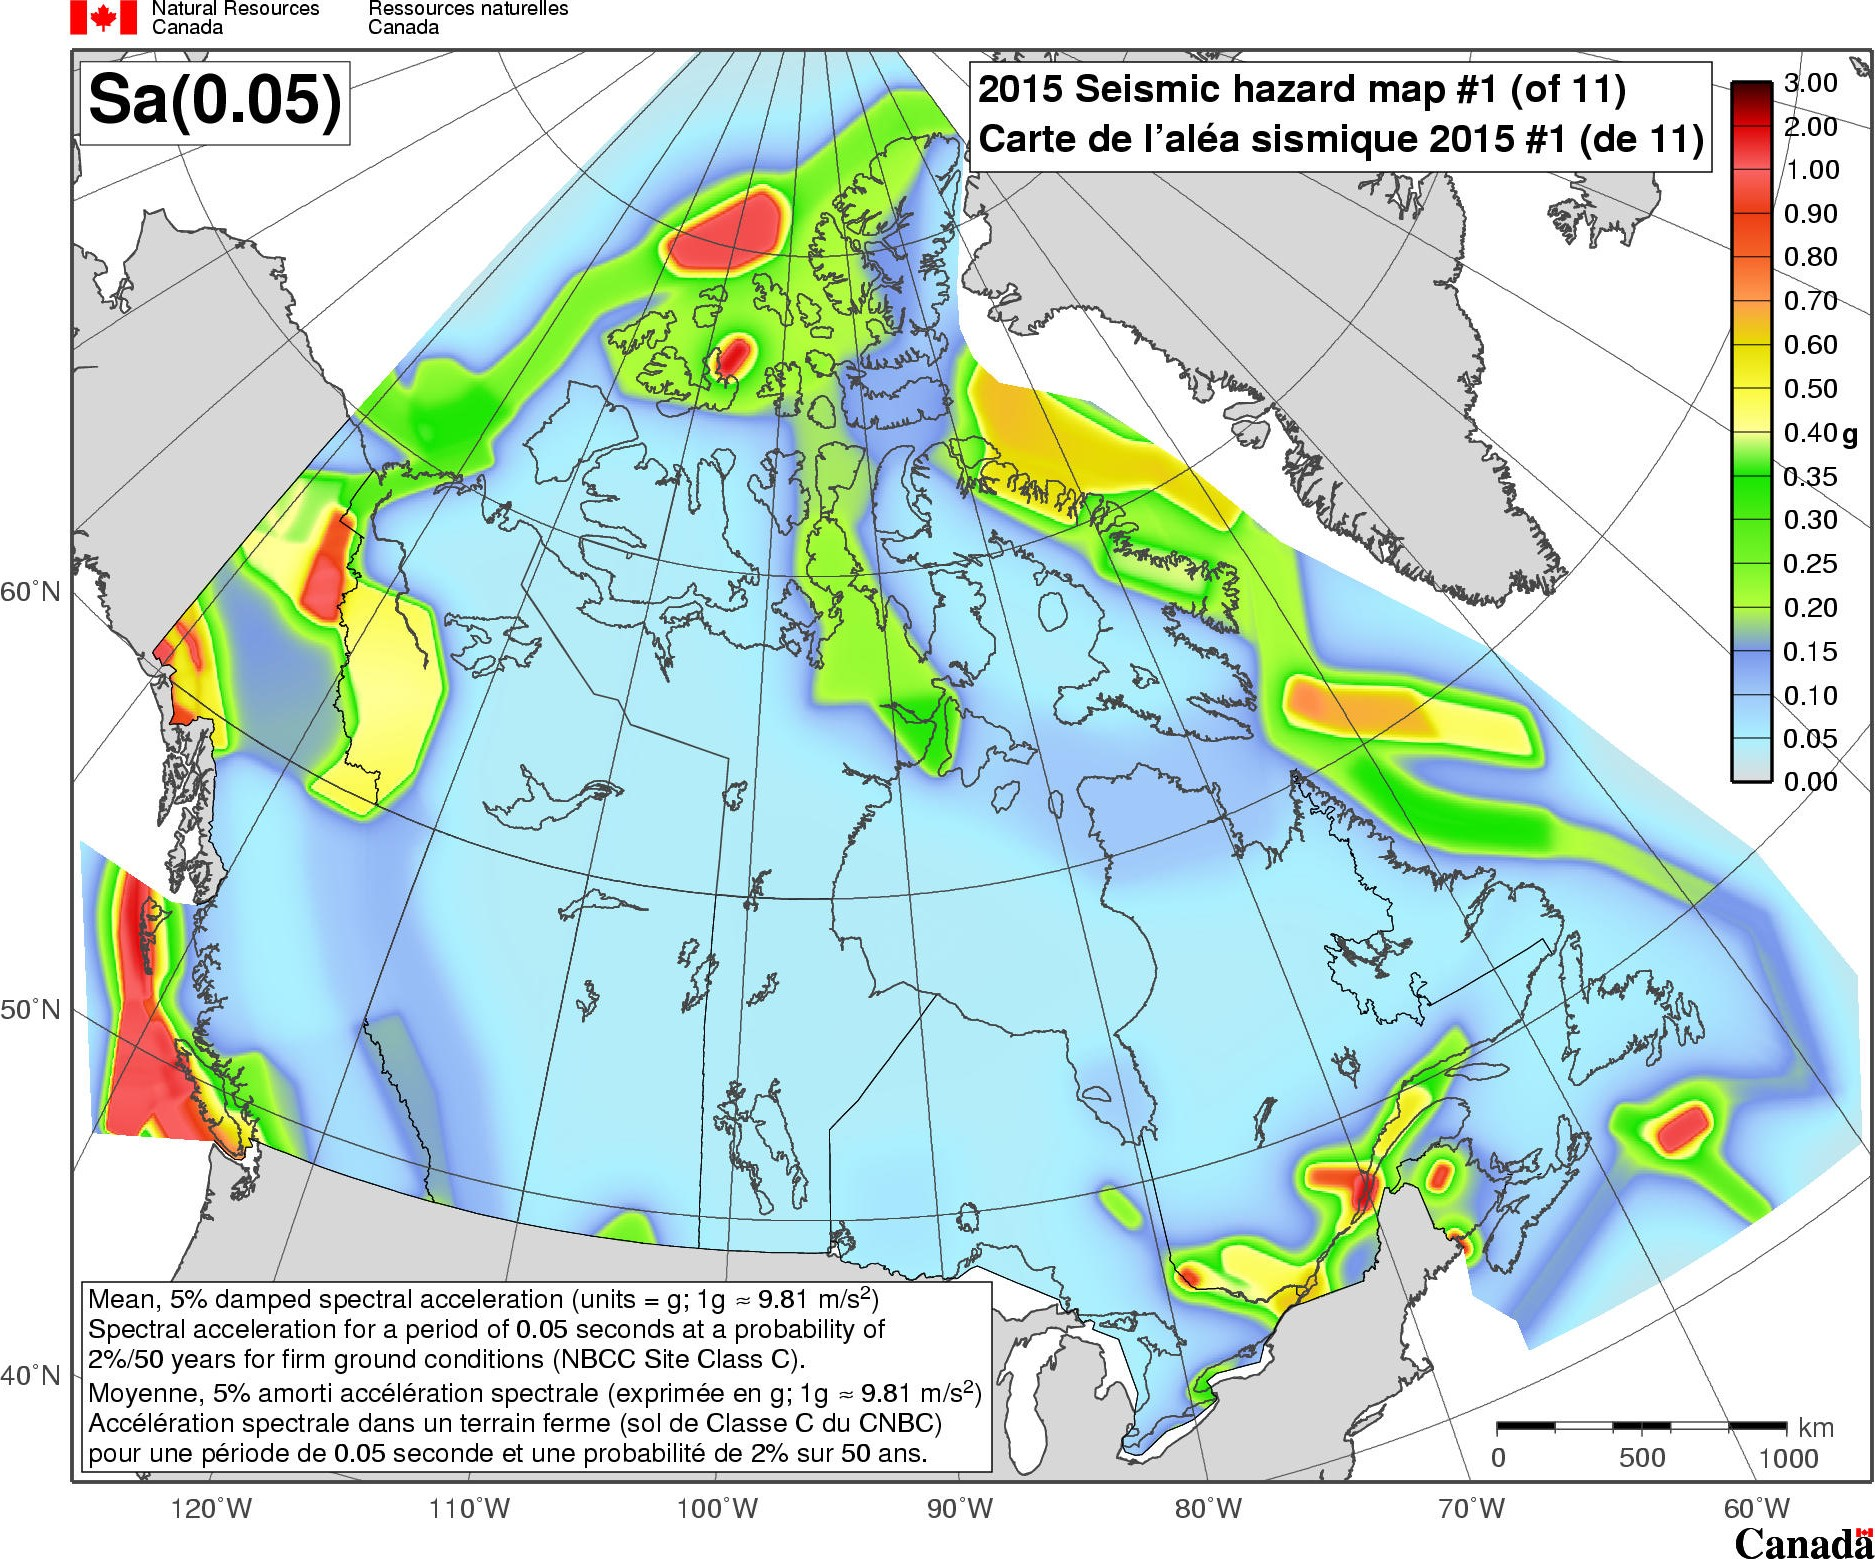 Earthquake Map Of Canada 2015 National Building Code of Canada seismic hazard maps